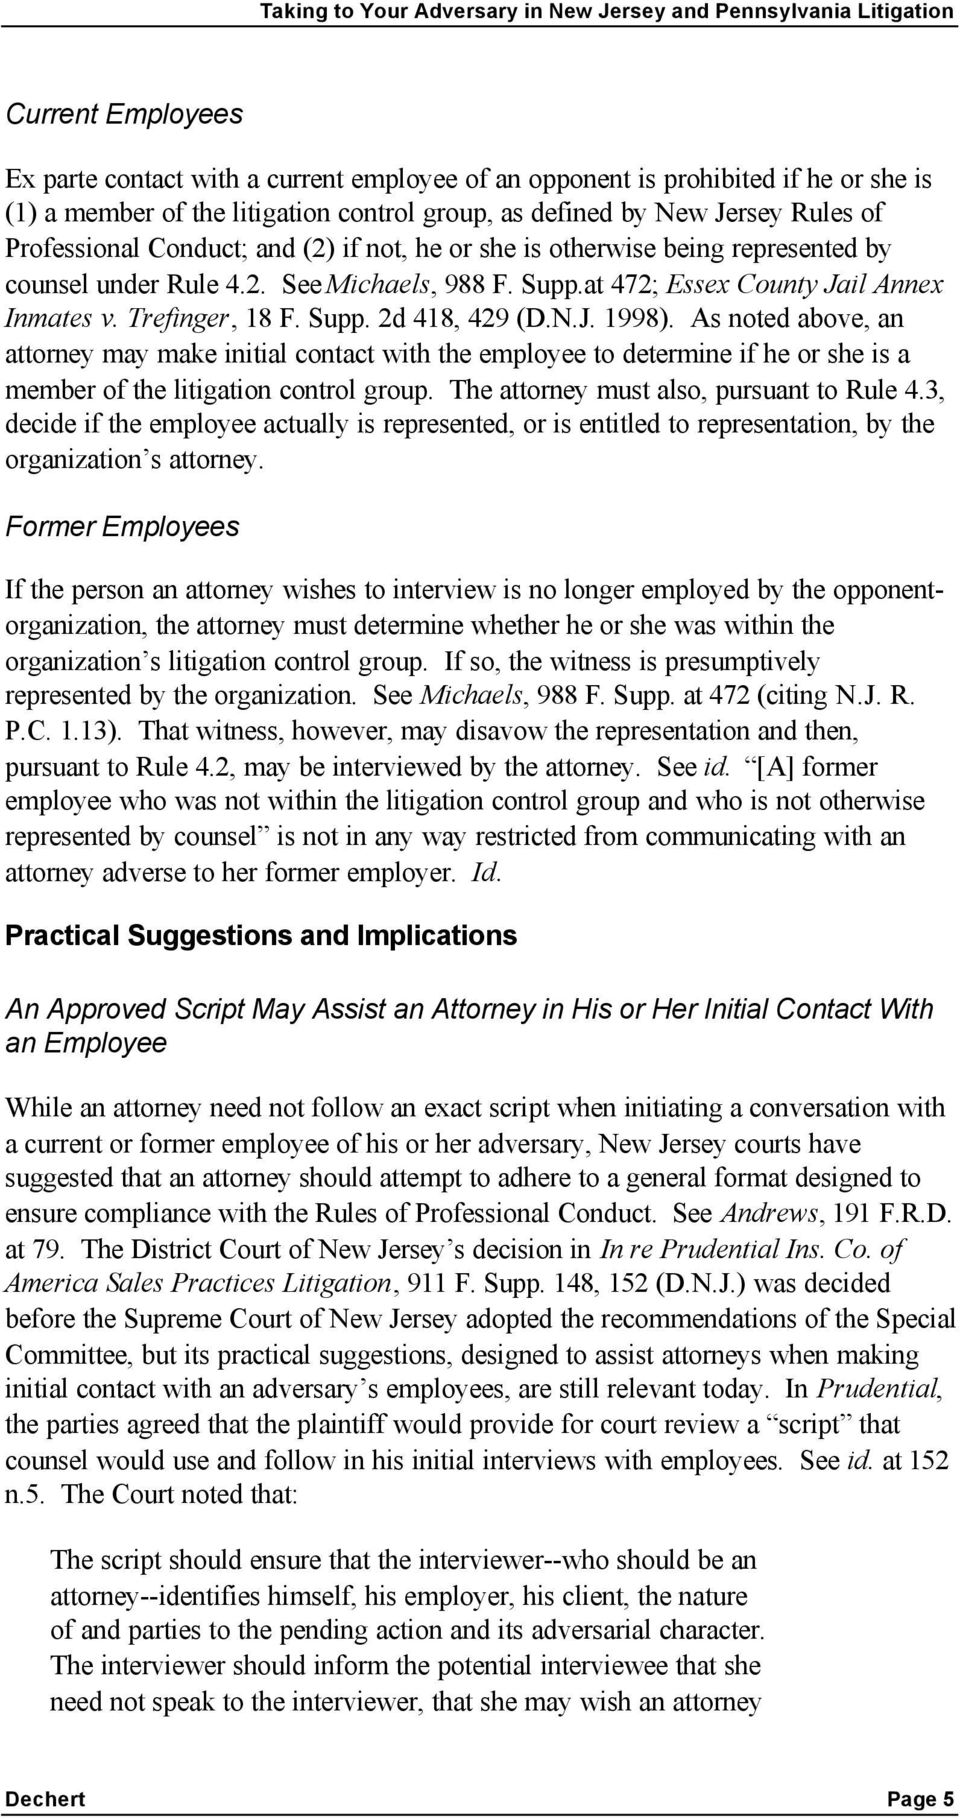 N.J. 1998). As noted above, an attorney may make initial contact with the employee to determine if he or she is a member of the litigation control group. The attorney must also, pursuant to Rule 4.